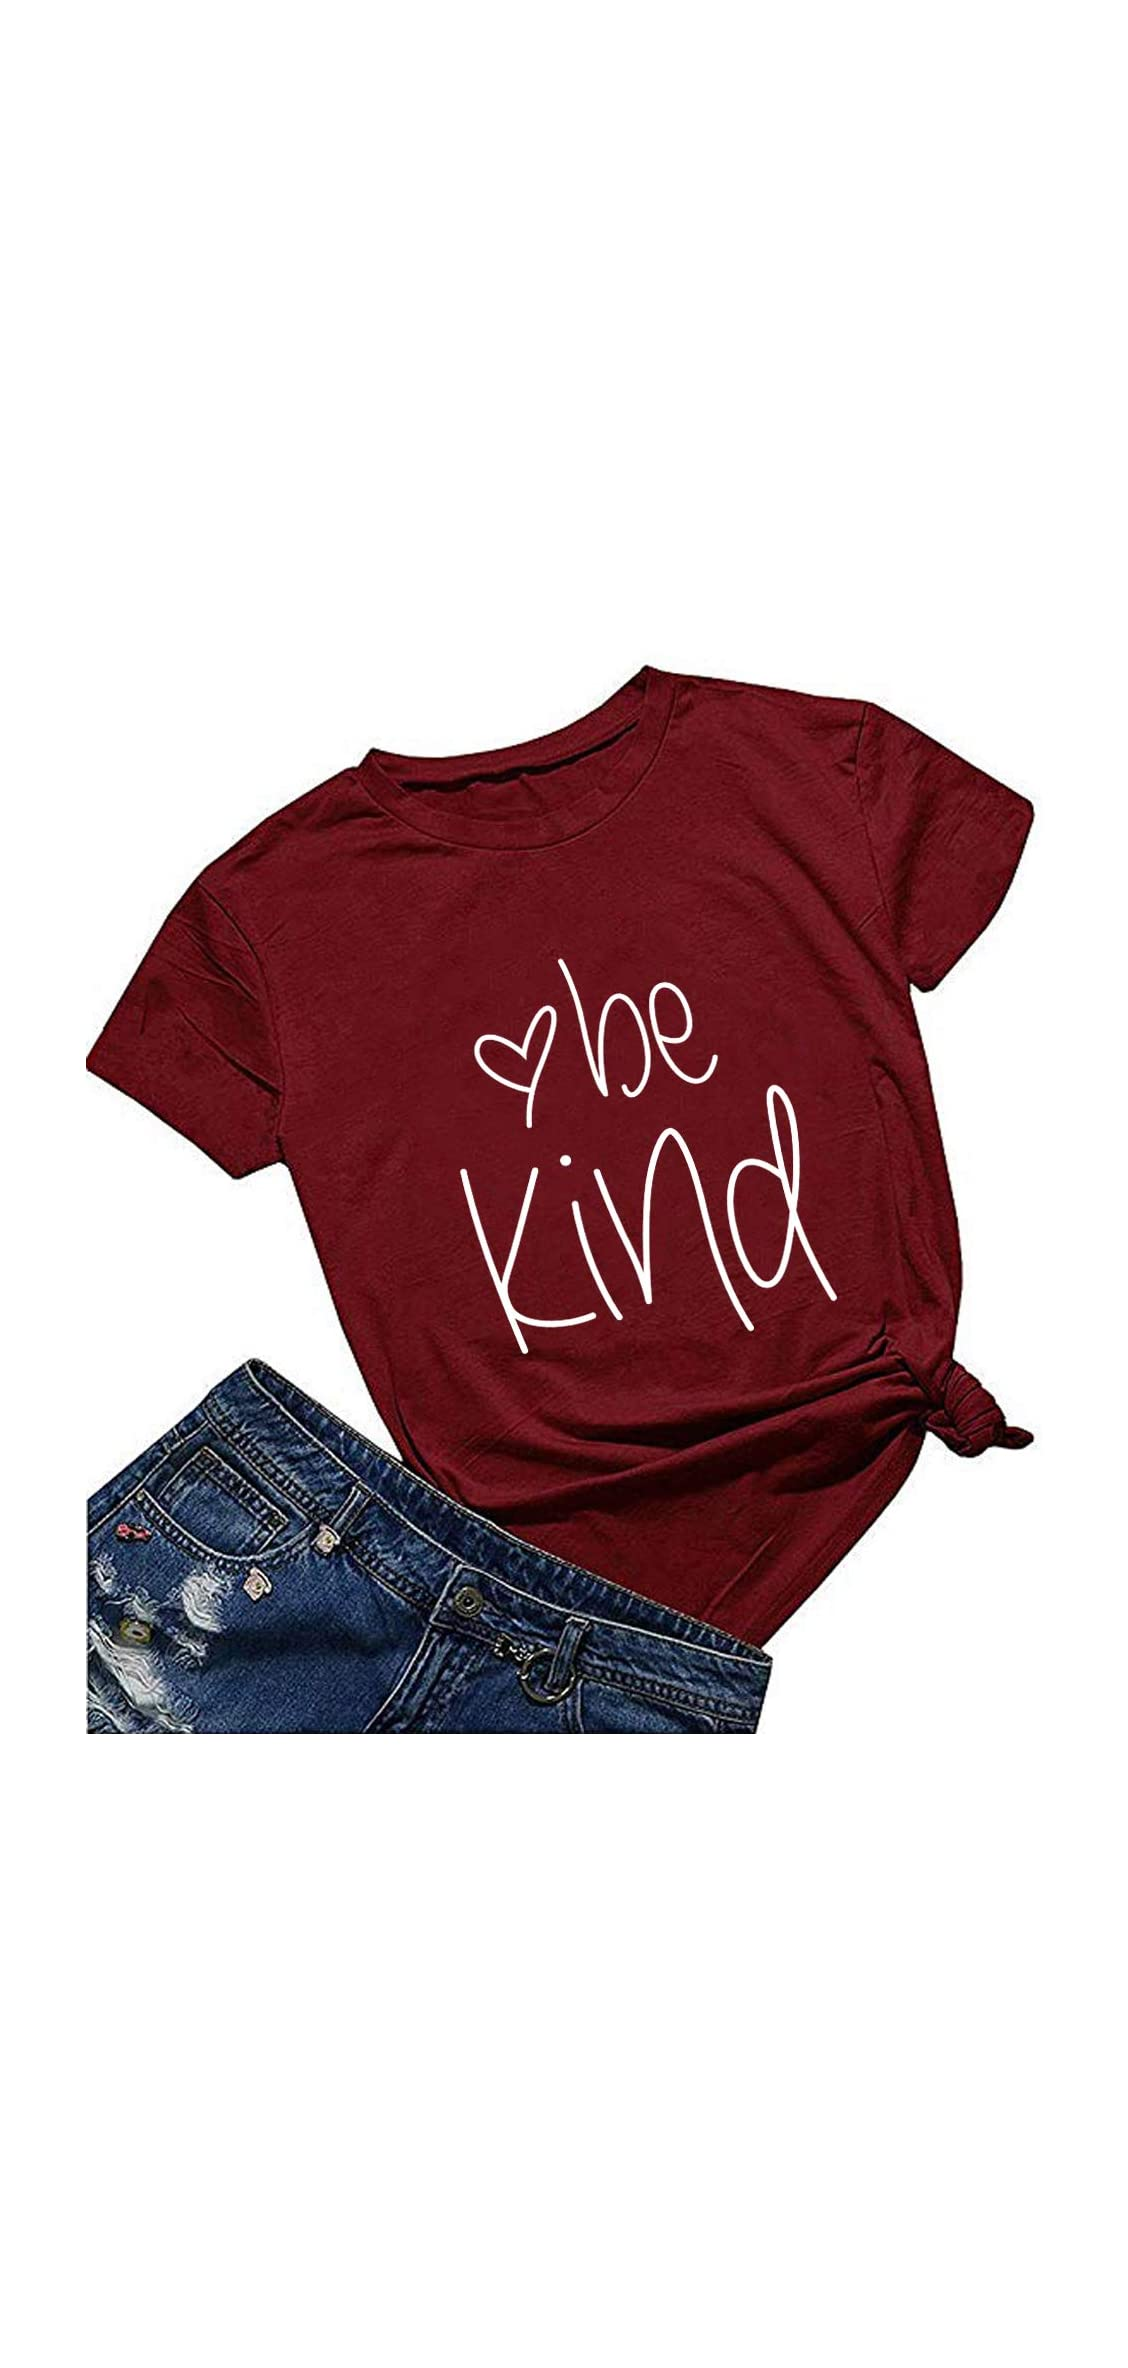 Women Be Kind T Shirt Cute Casual Tops Inspirational